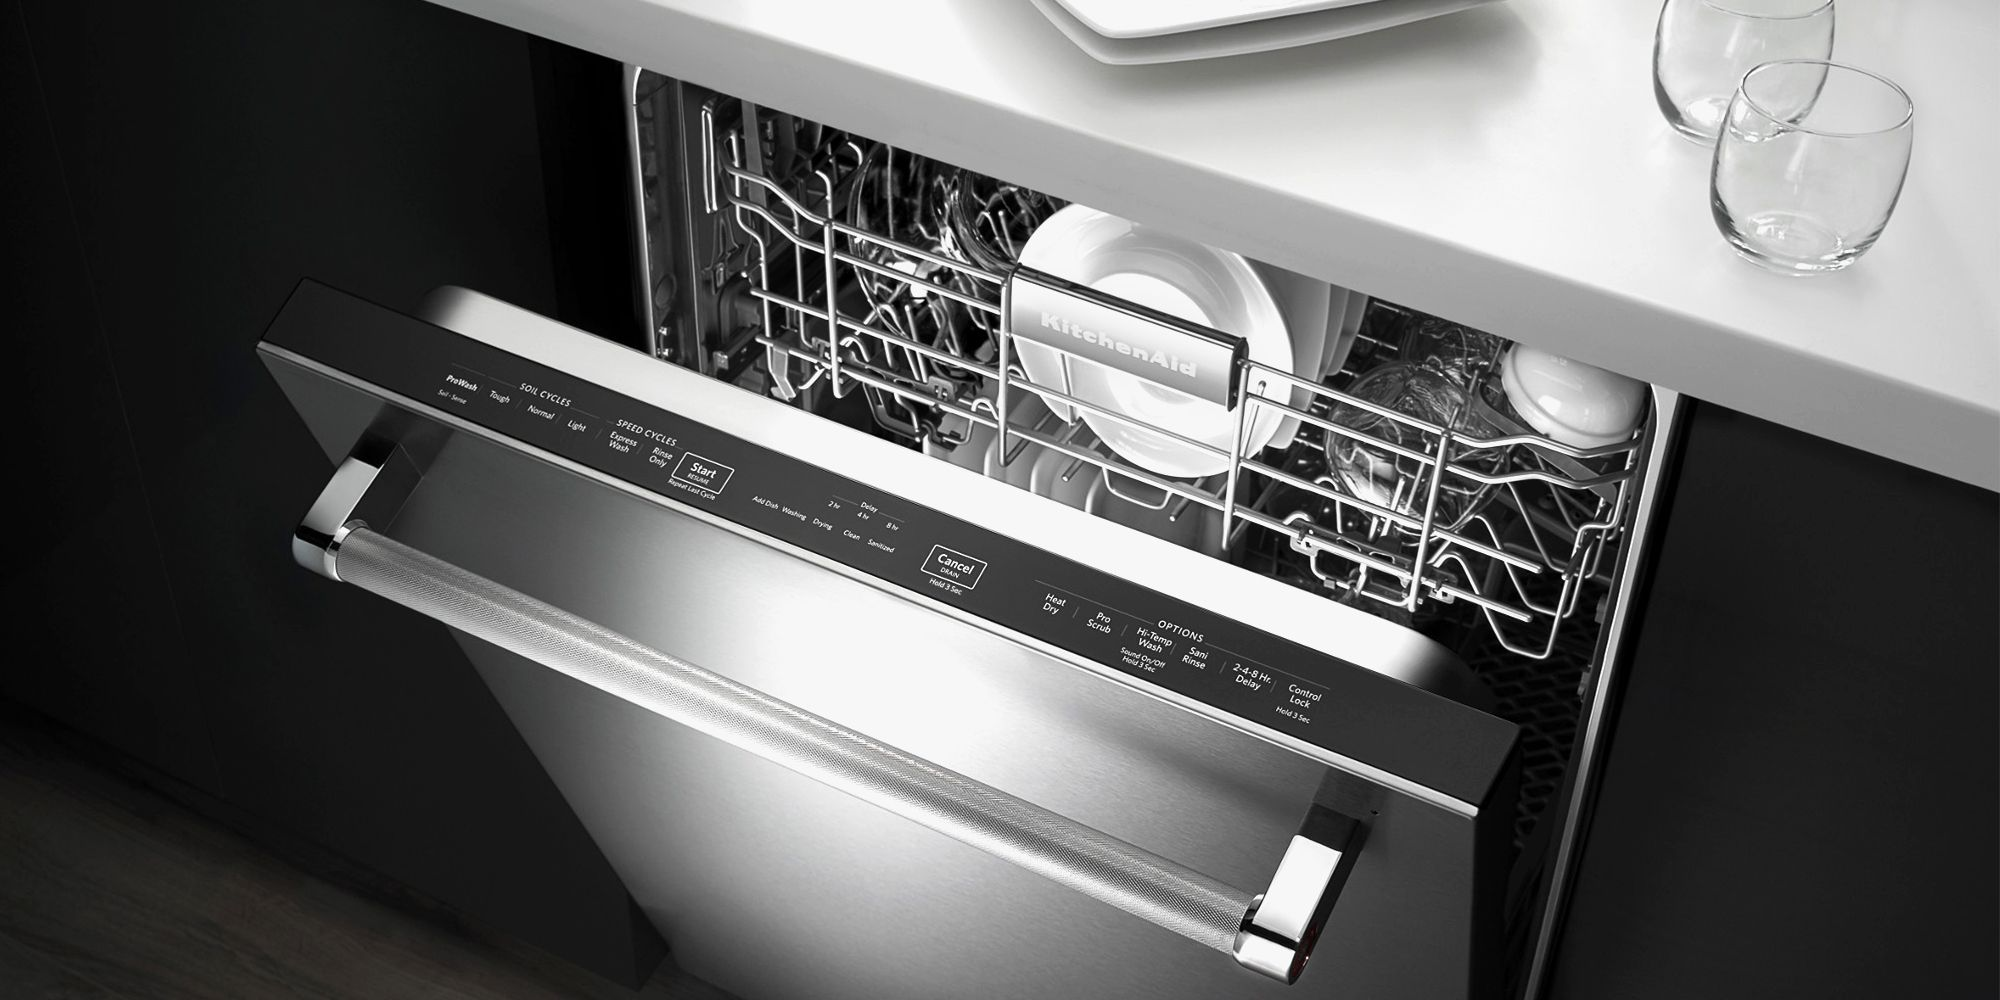 10 Best Dishwashers for 2018 Top Rated Dishwasher Reviews & Brands